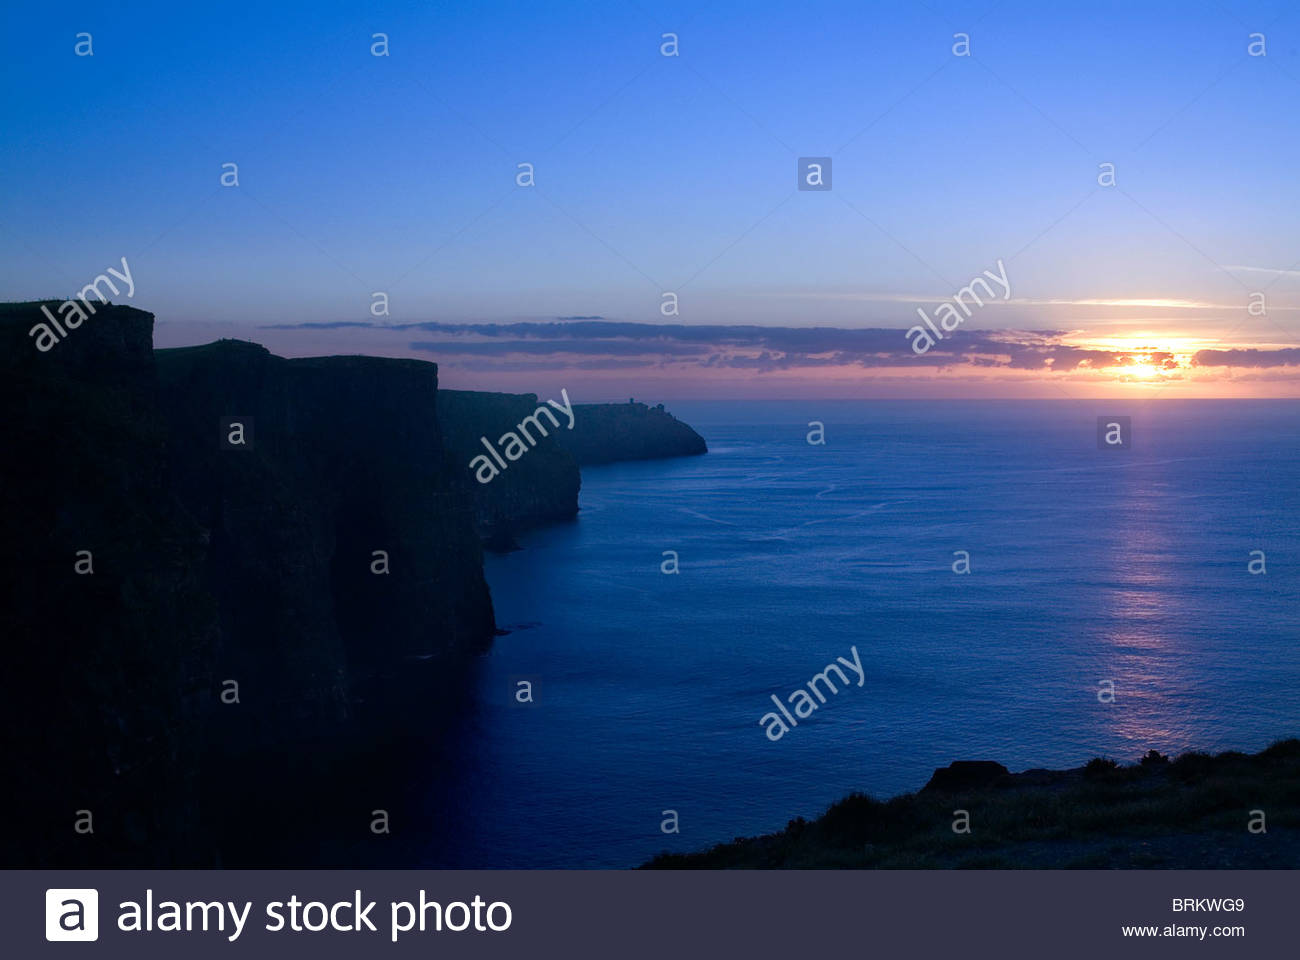 Sunset over the Atlantic from the Cliffs of Moher - Stock Image